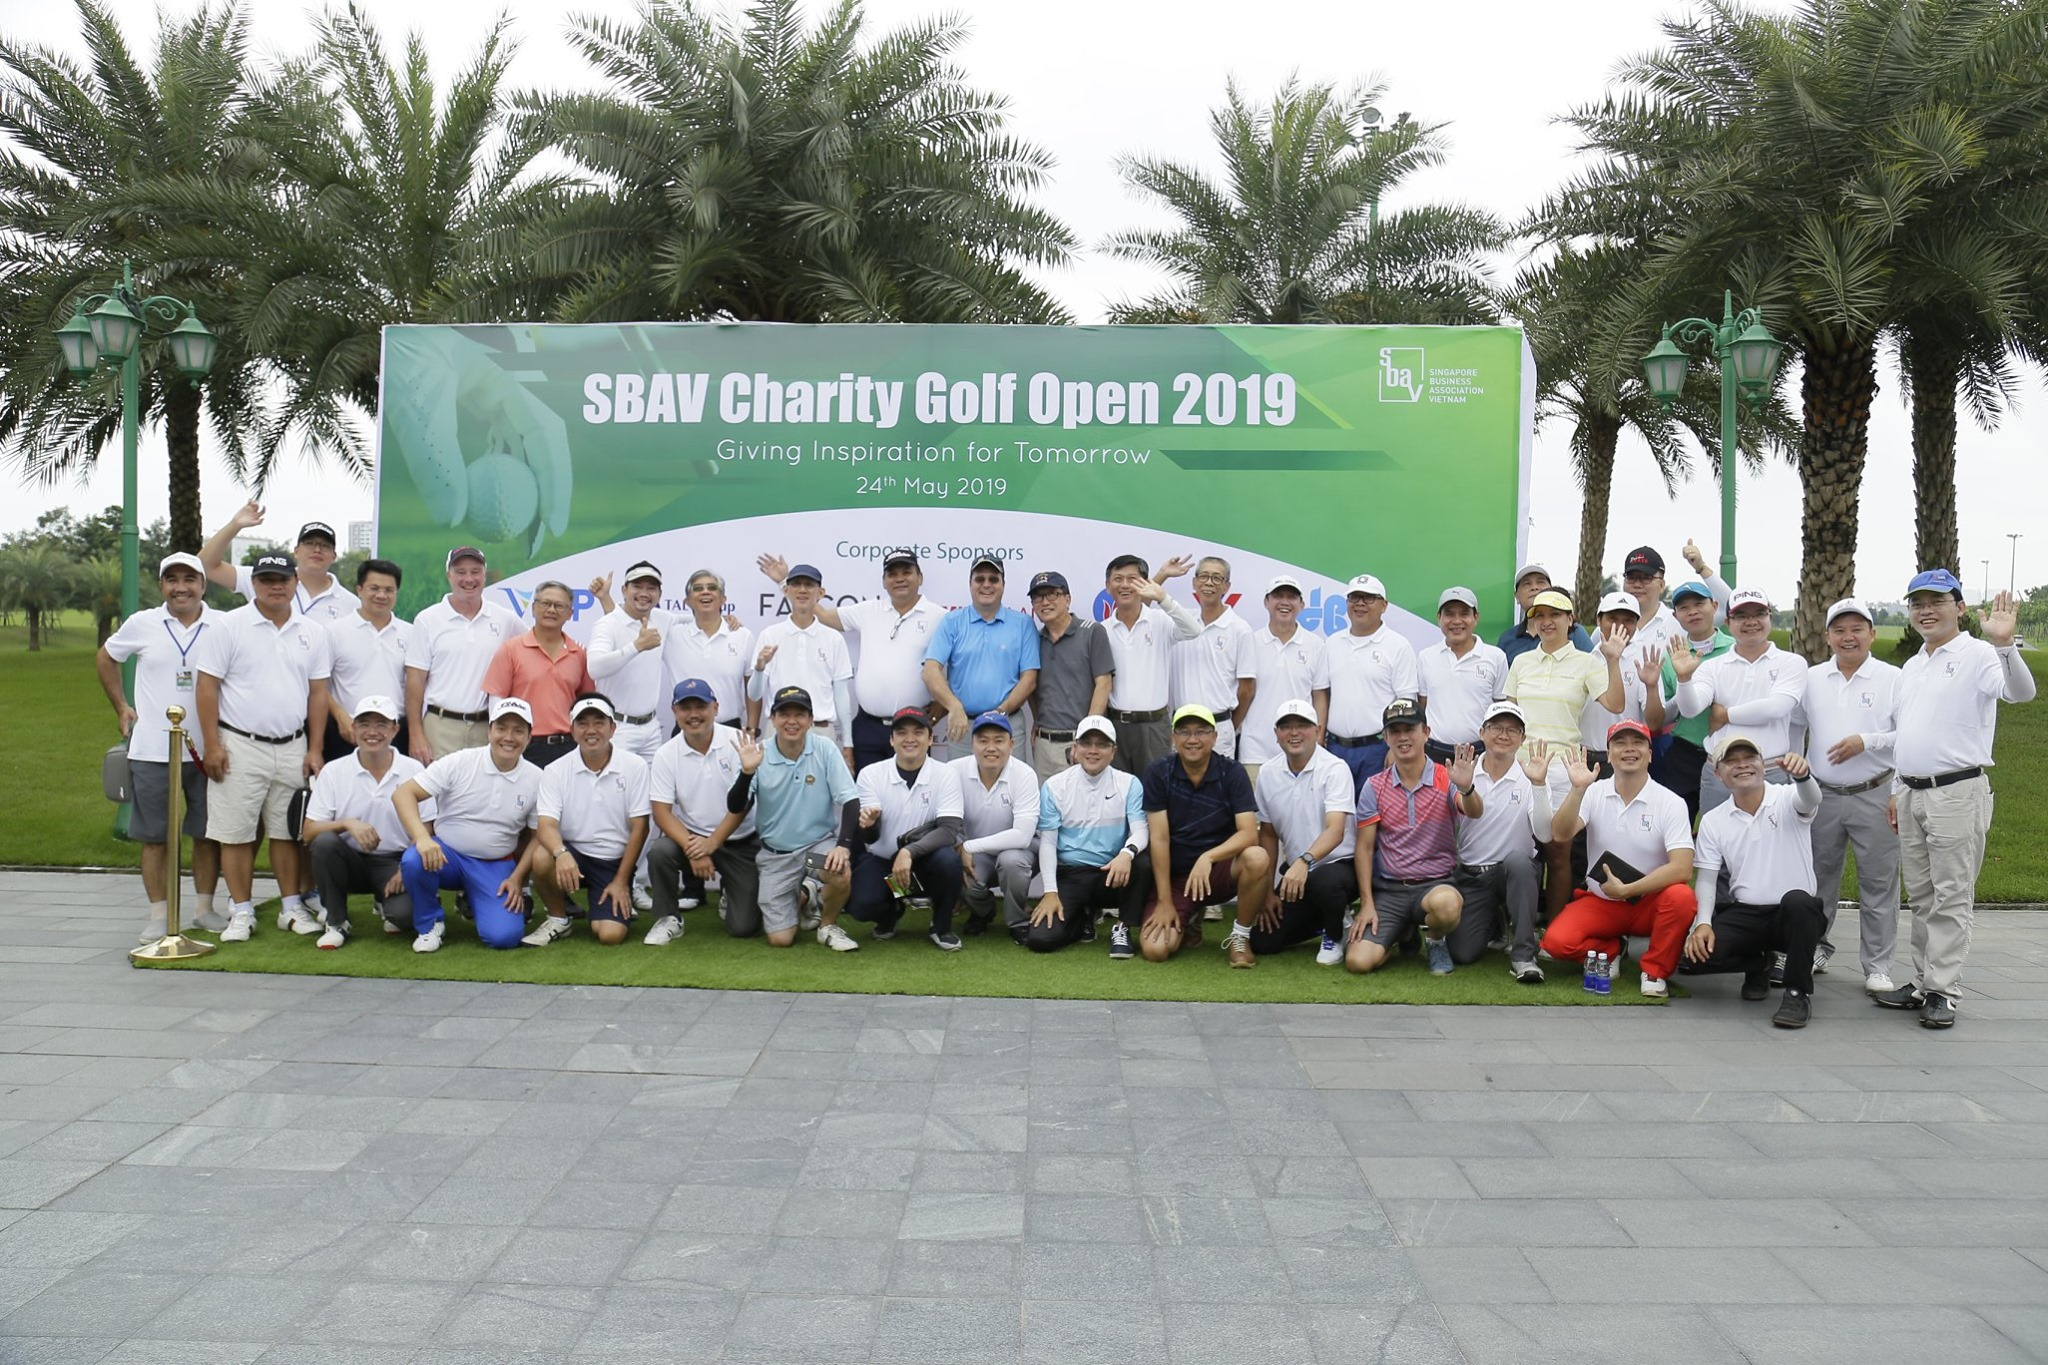 GIẢI GOLF SBAV CHARITY GOLF OPEN 2019